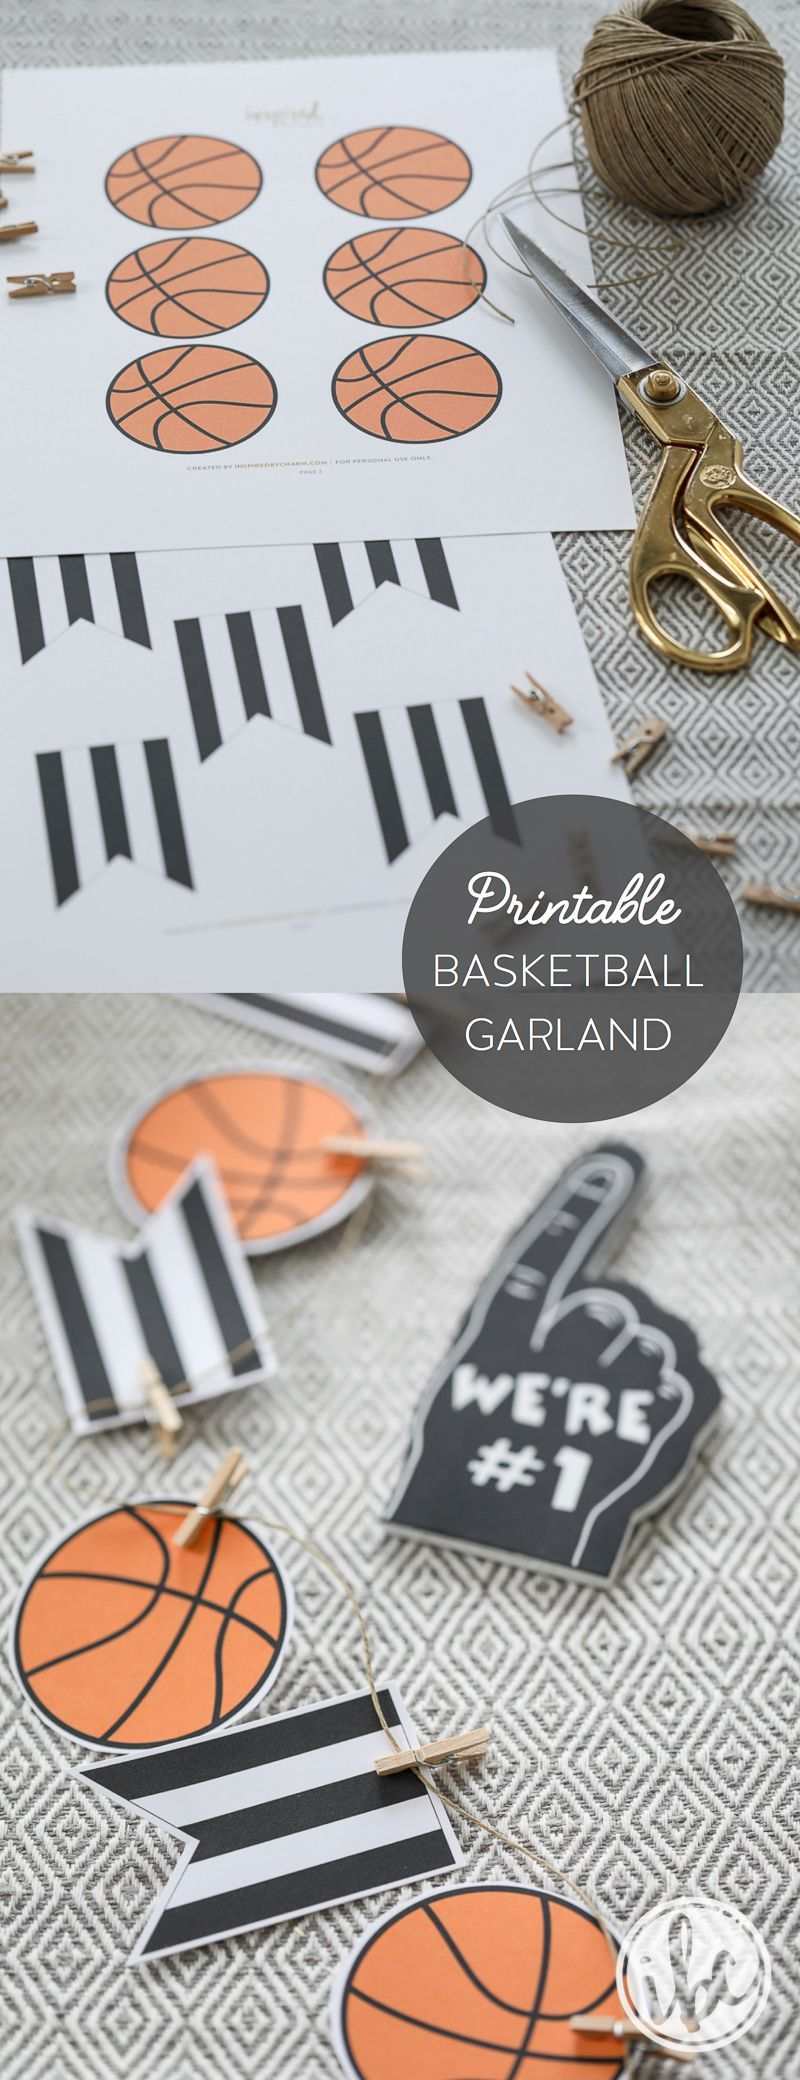 Free Printable Basketball Party Garland Download Basketball Entertaining Party Decor Ide Basketball Party Sports Themed Birthday Party Basketball Theme Party